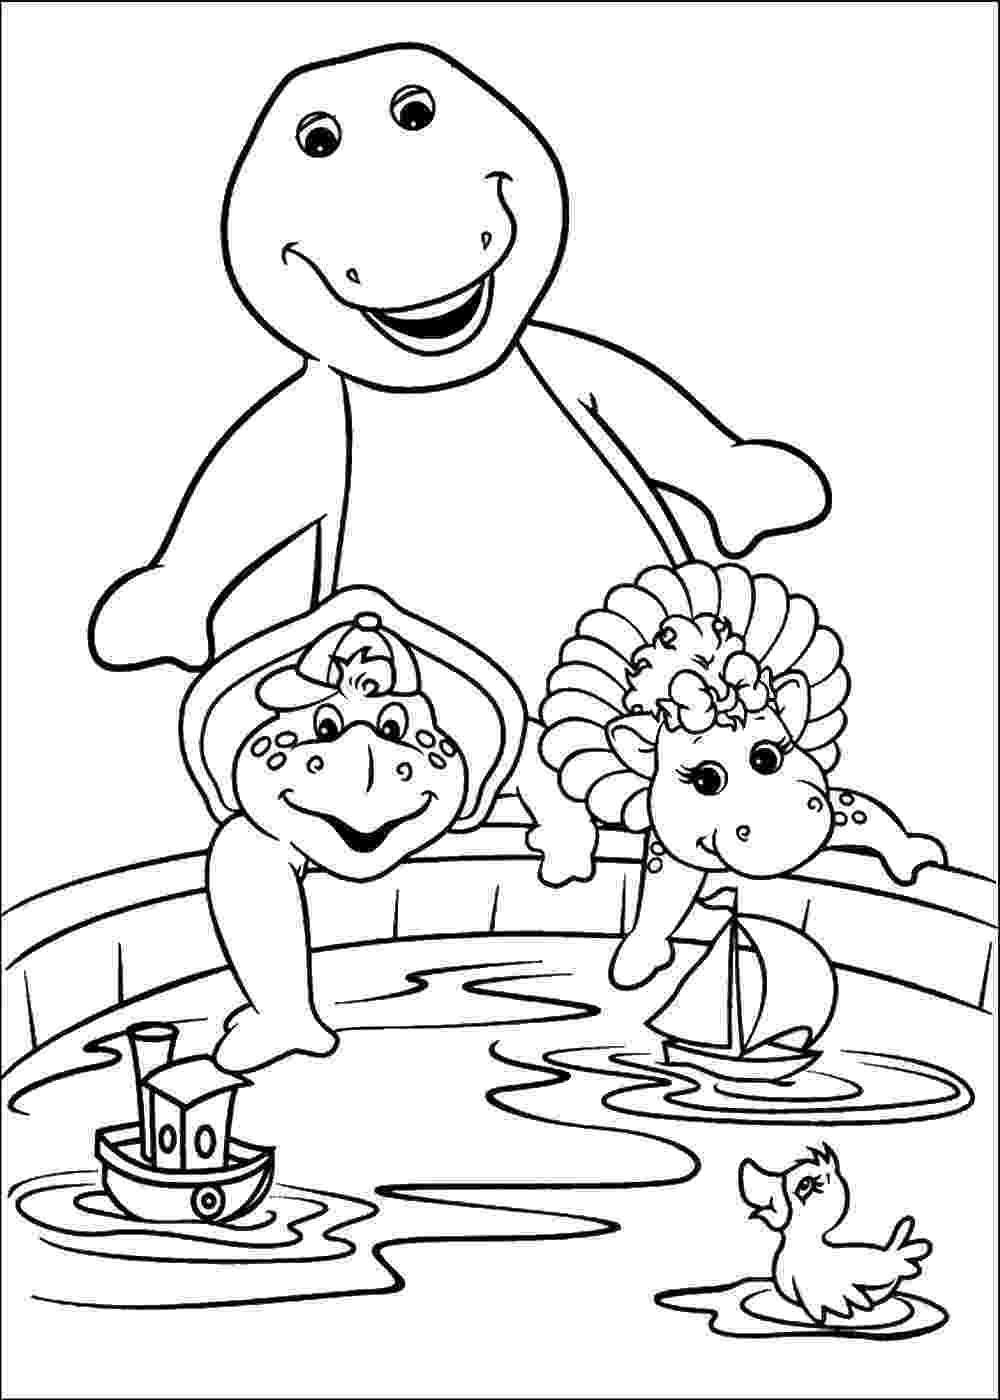 pictures to color printable zootopia coloring pages best coloring pages for kids pictures printable to color